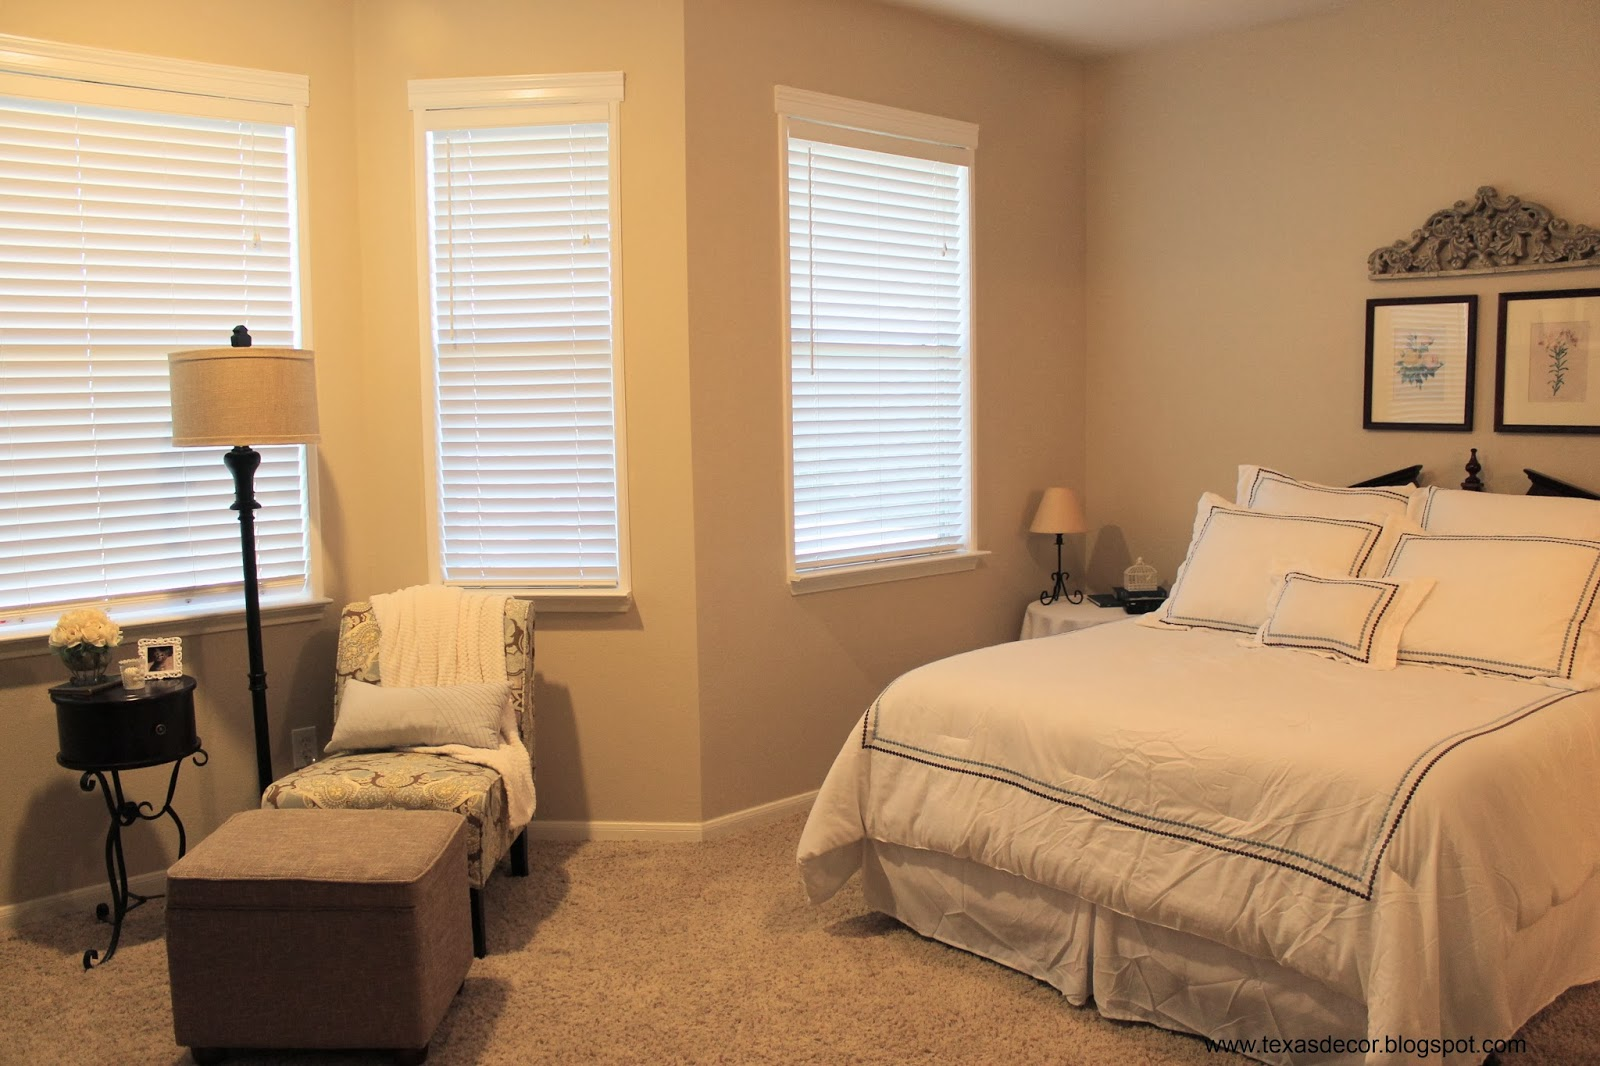 Texas decor master bedroom and bath before and after for Bedroom makeover